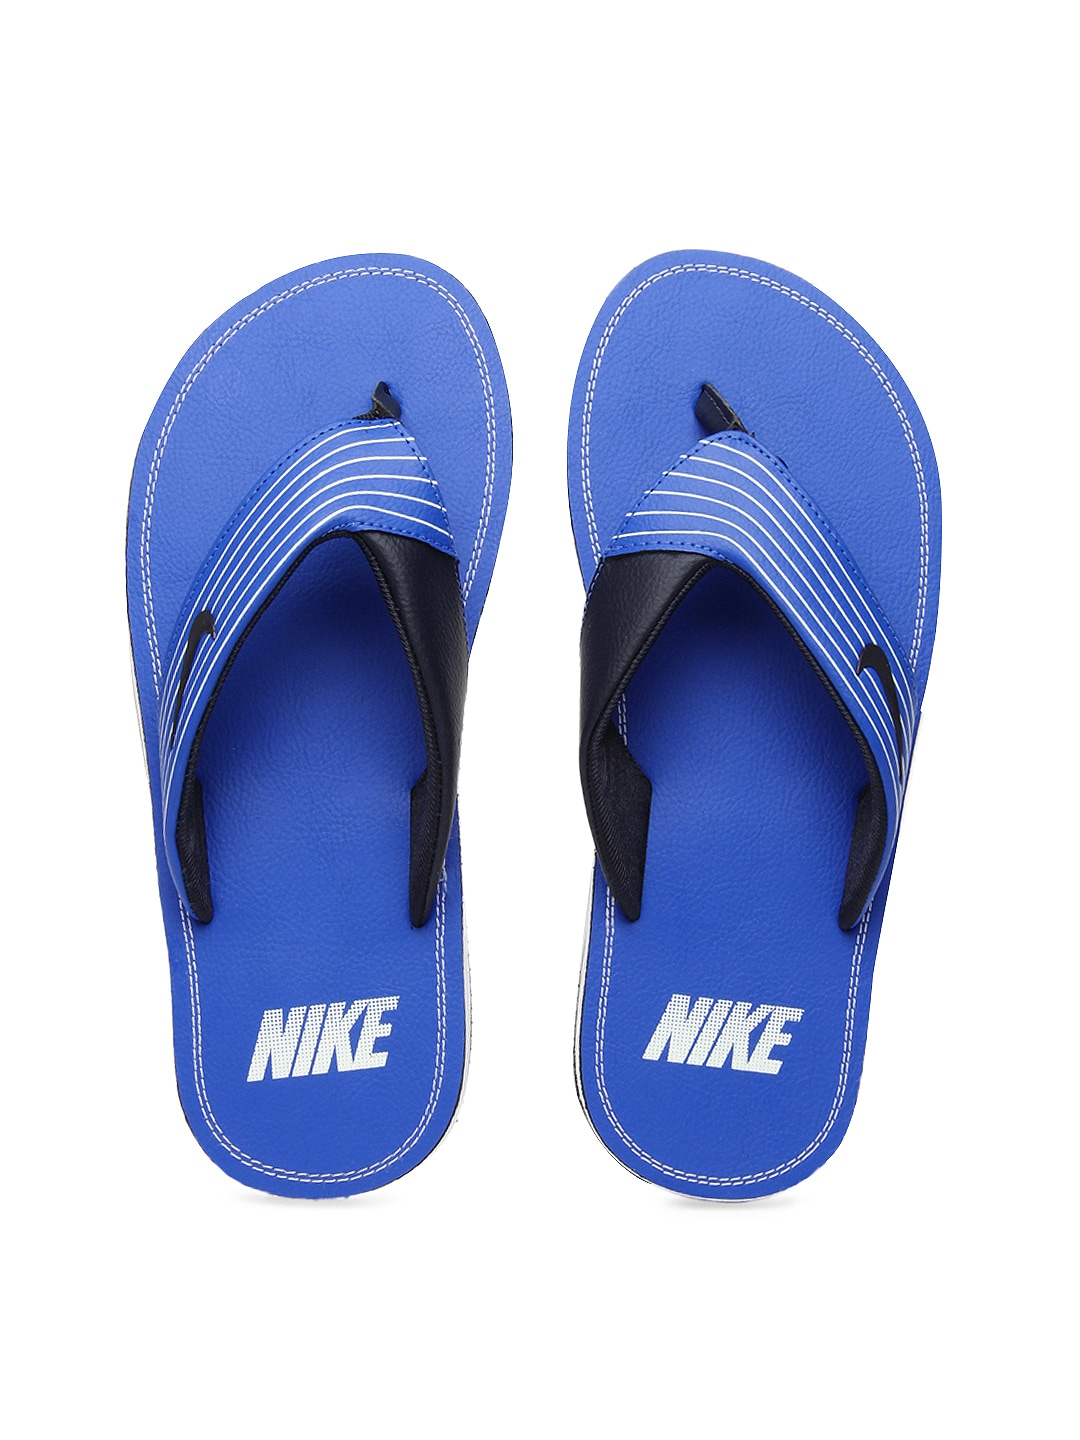 e69f8402e8a7 Nike 636165-403 Slippers And Flip Flops - Best Price in India